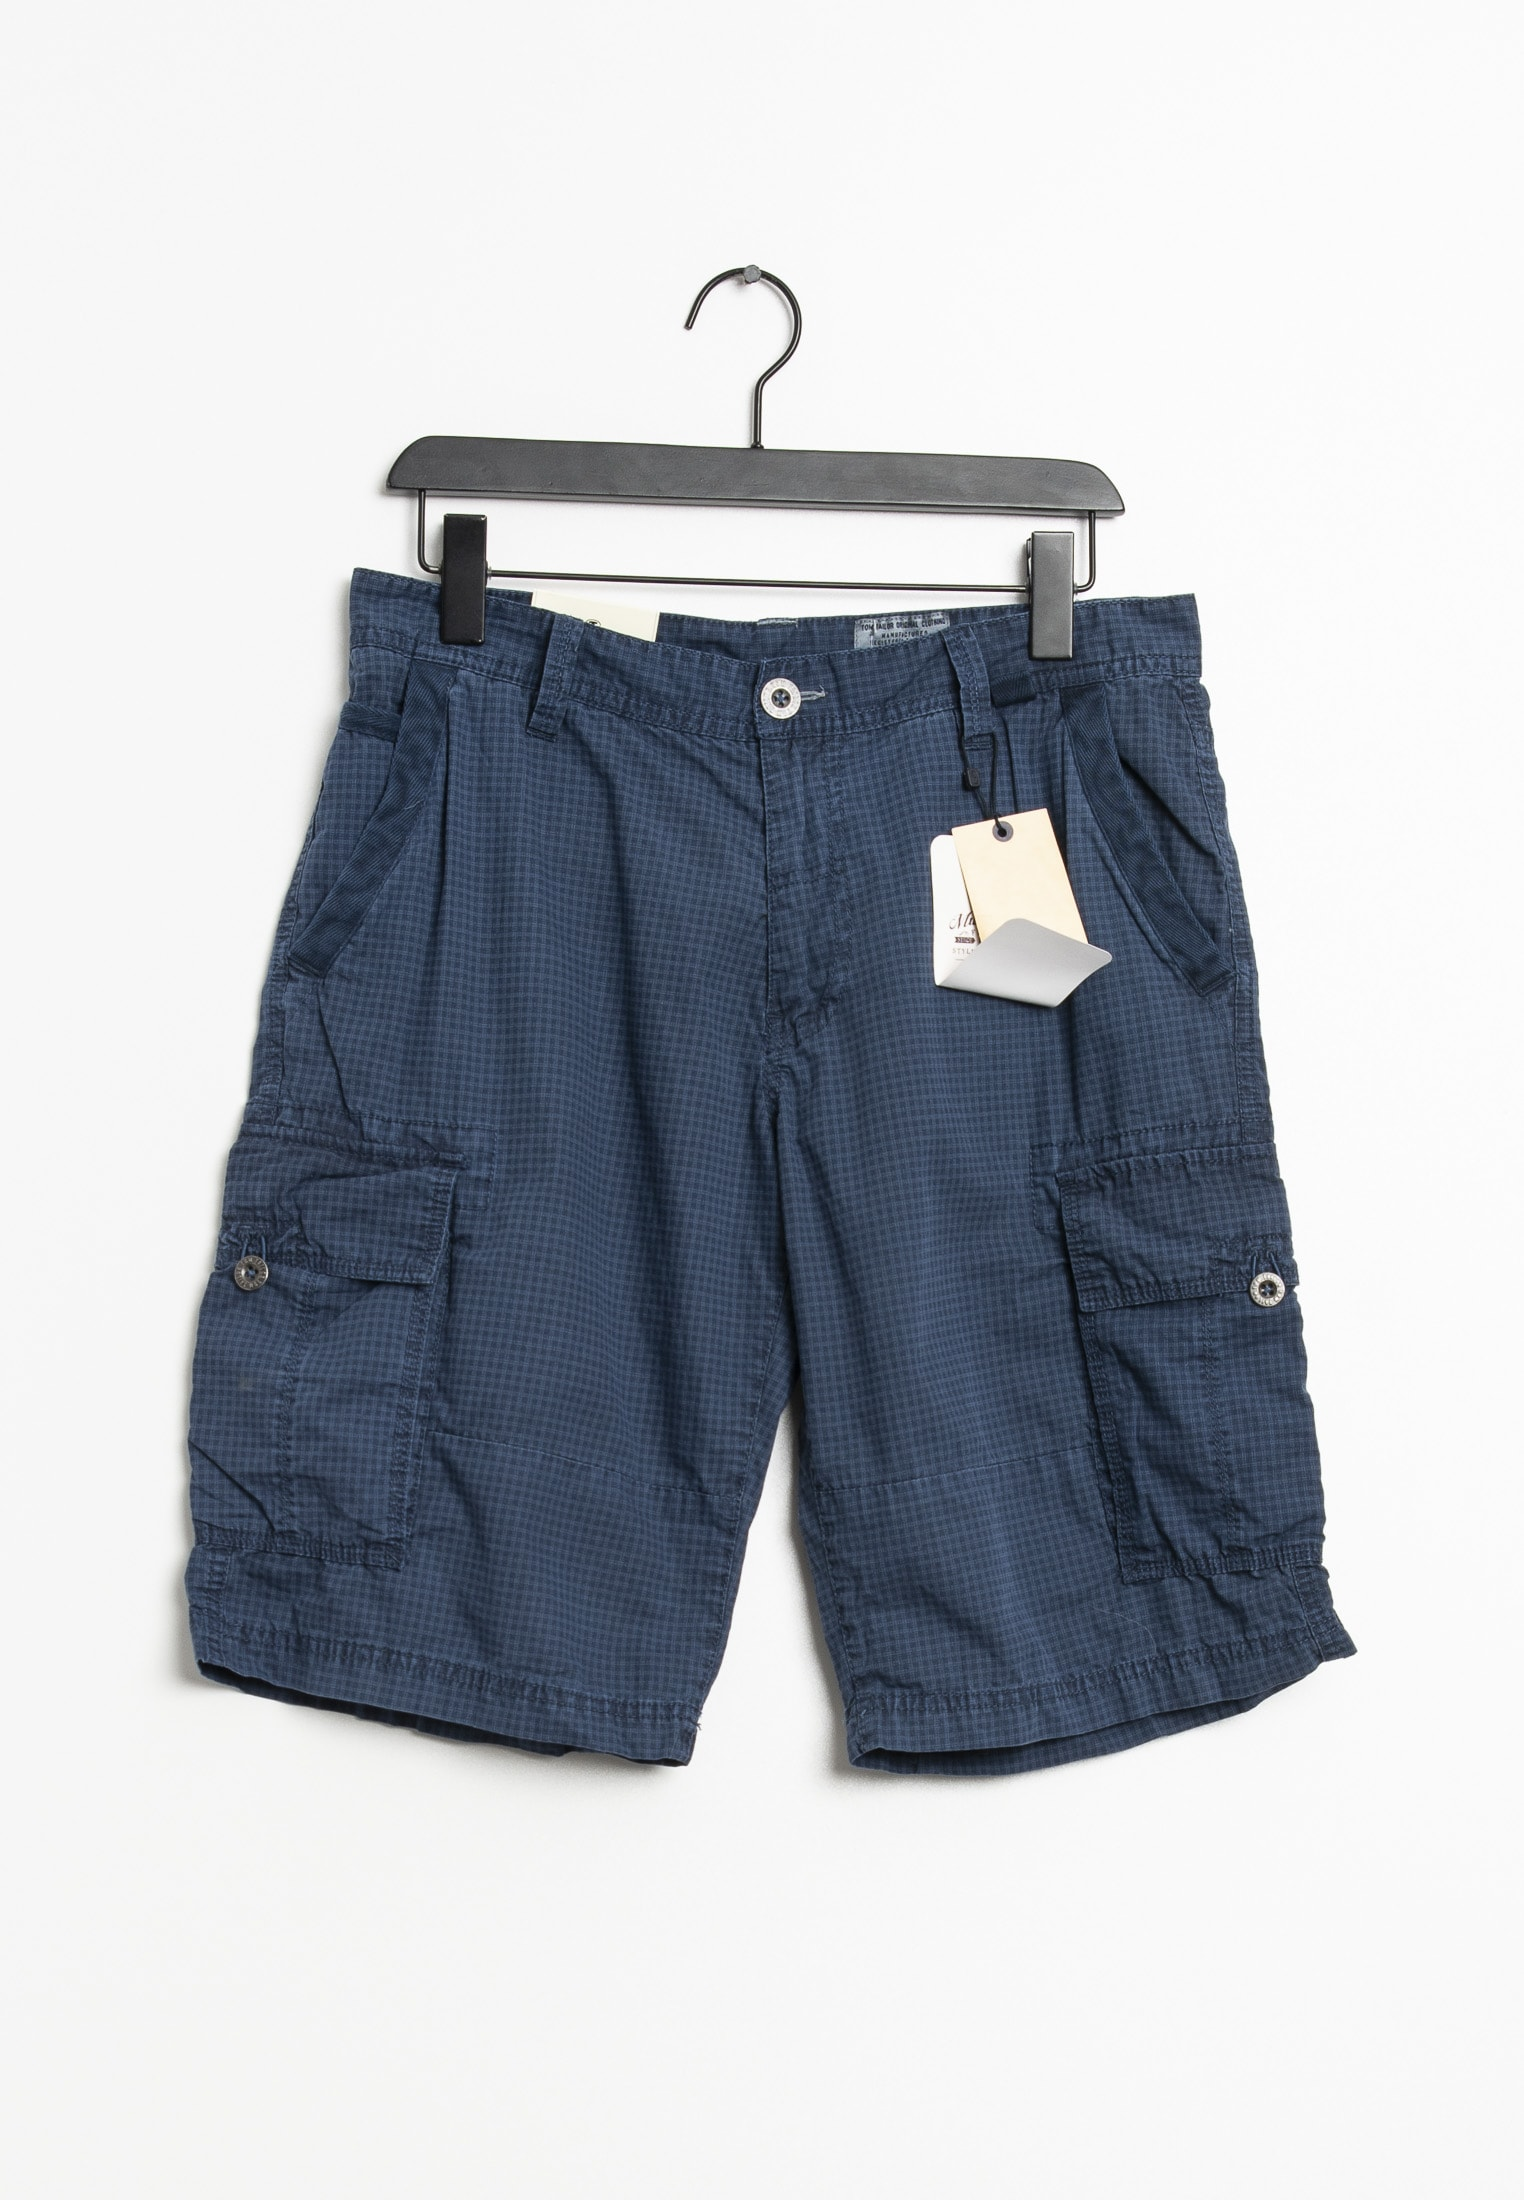 TOM TAILOR Shorts Blau Gr.31